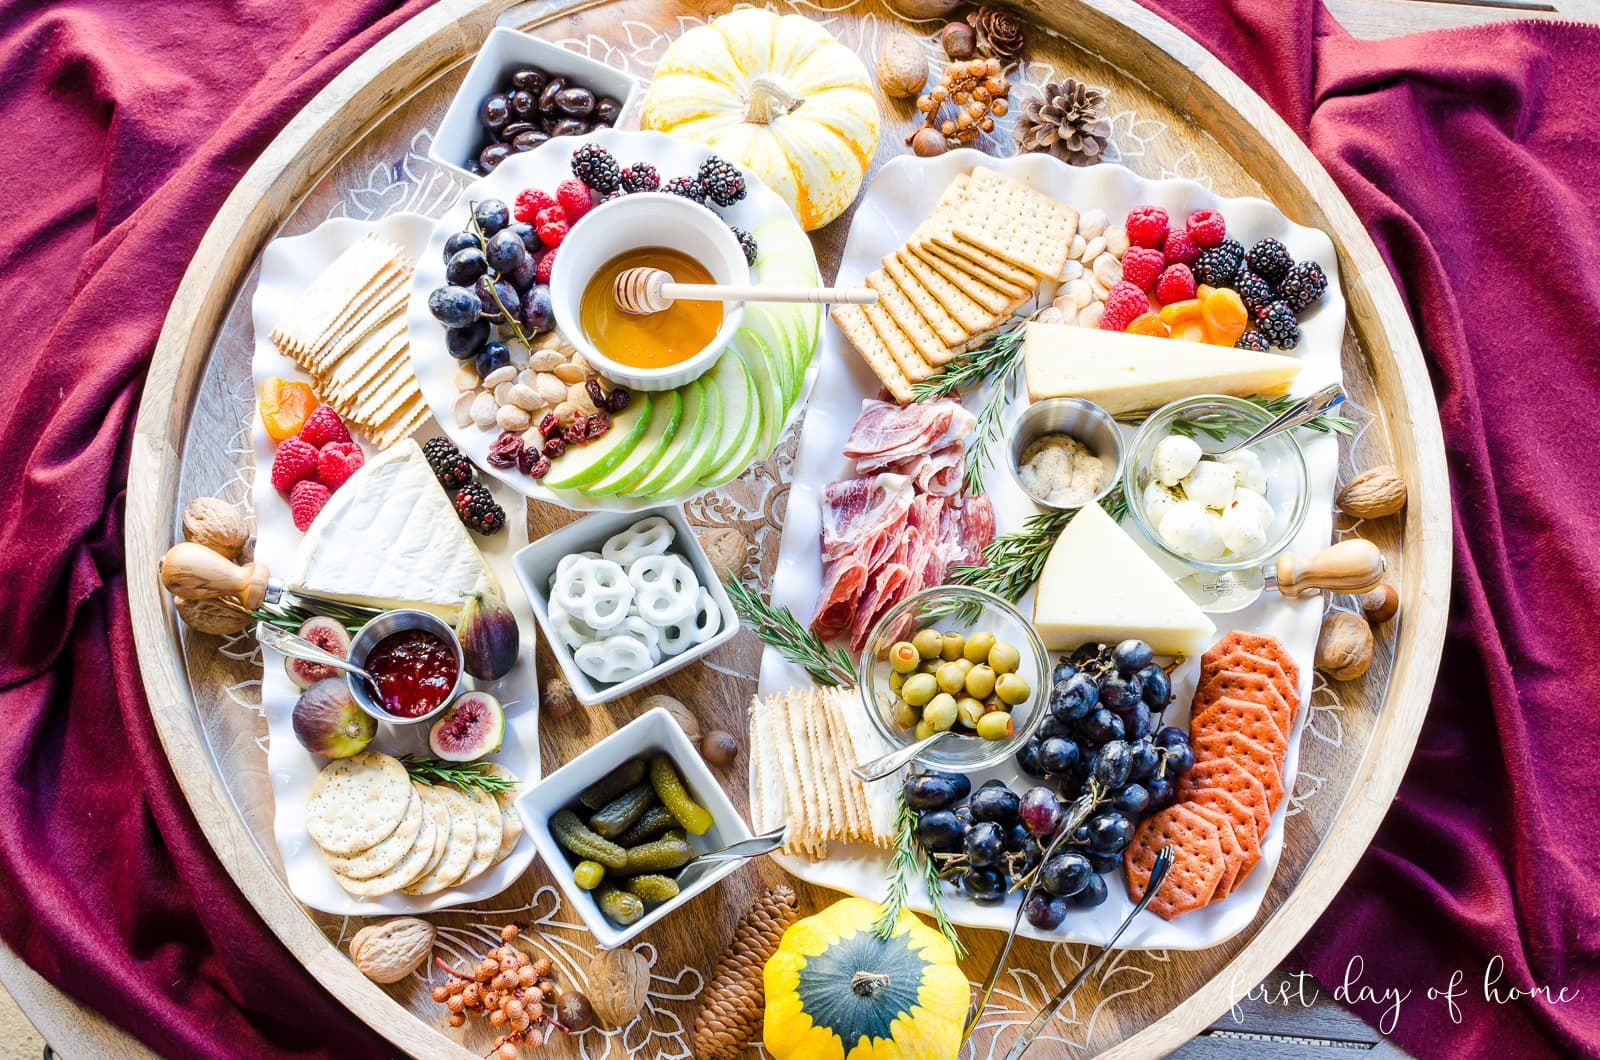 Charcuterie board with mix of specialty meats, cheeses, salty snacks, savory treats, crackers, fruit, preserves, pickled foods and more